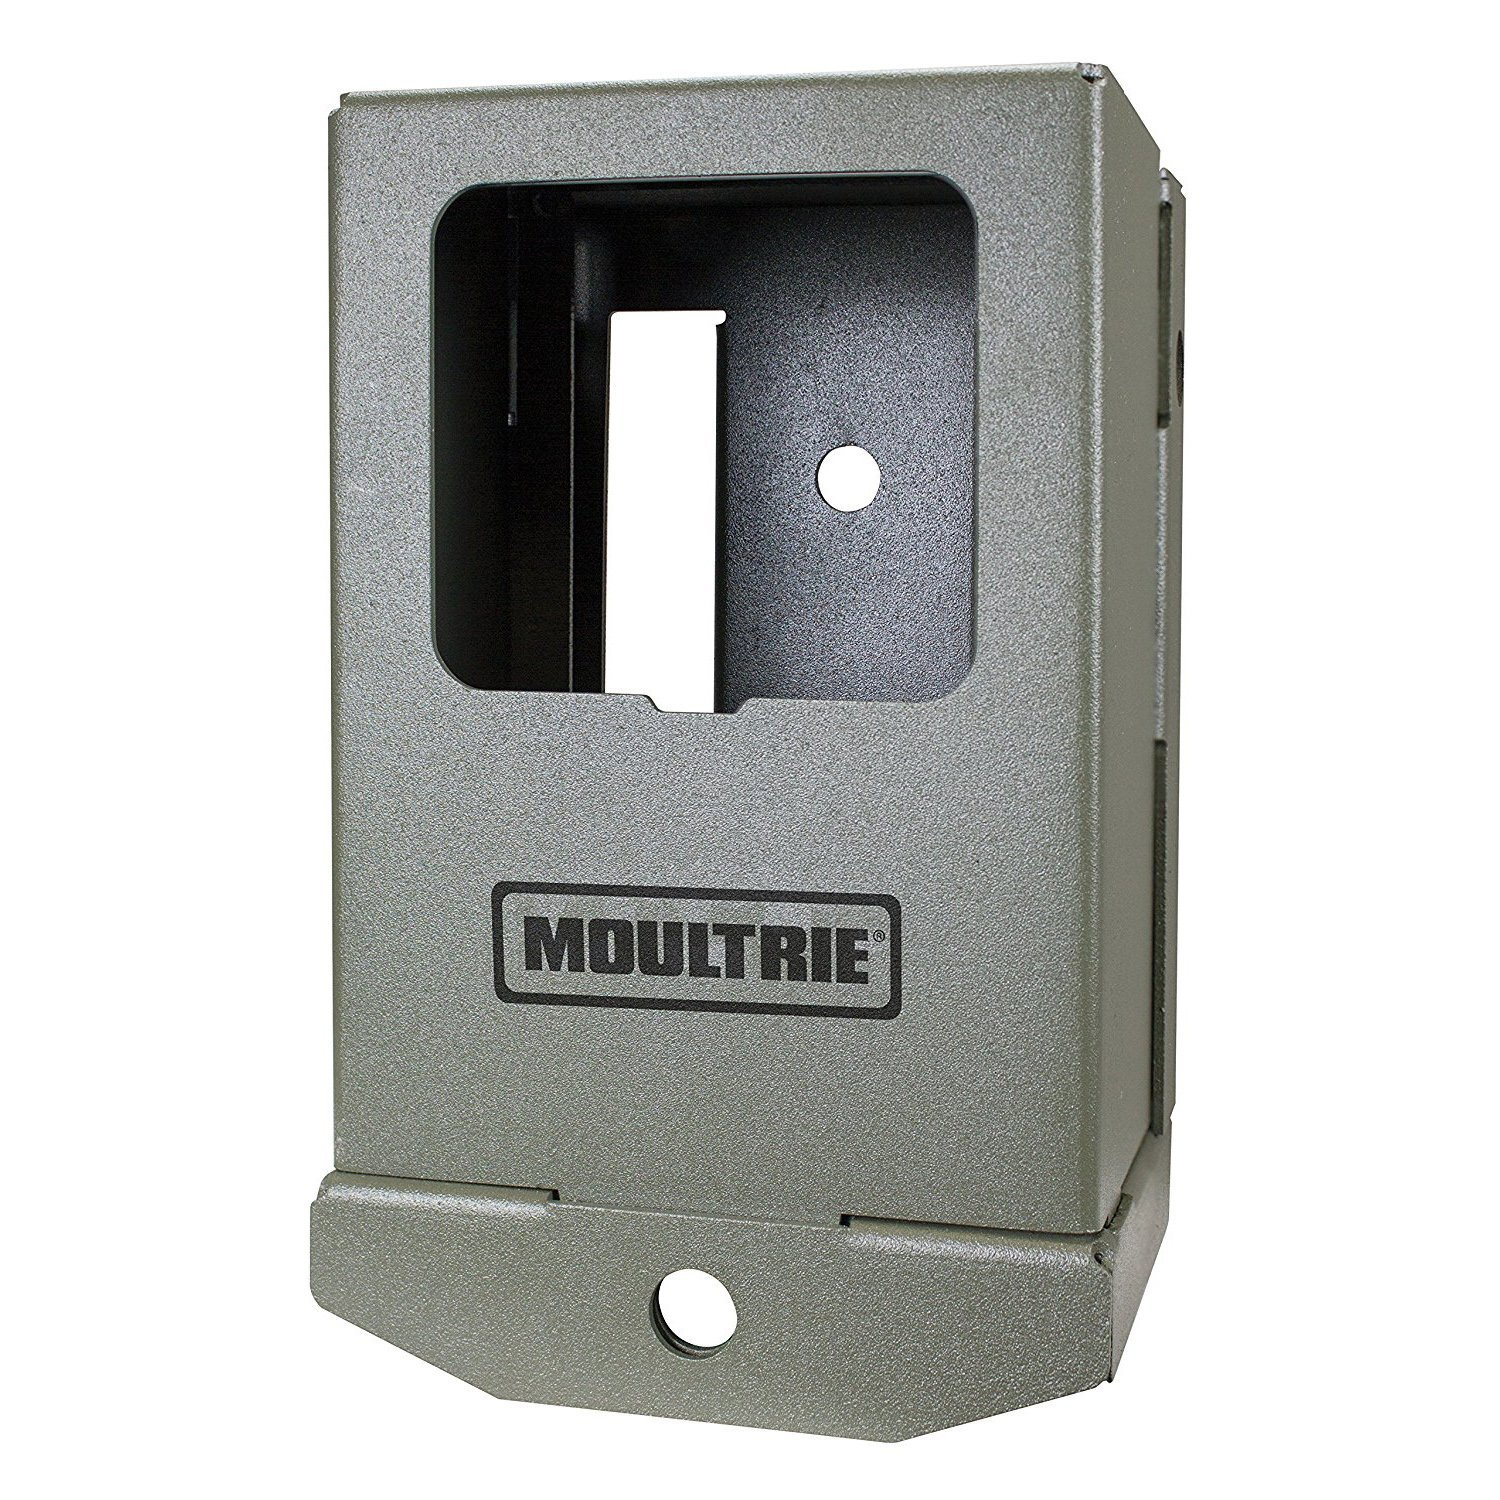 Moultrie M Series 2017 Model Game Camera Security Case Box, 4 Pack | MCA-13187